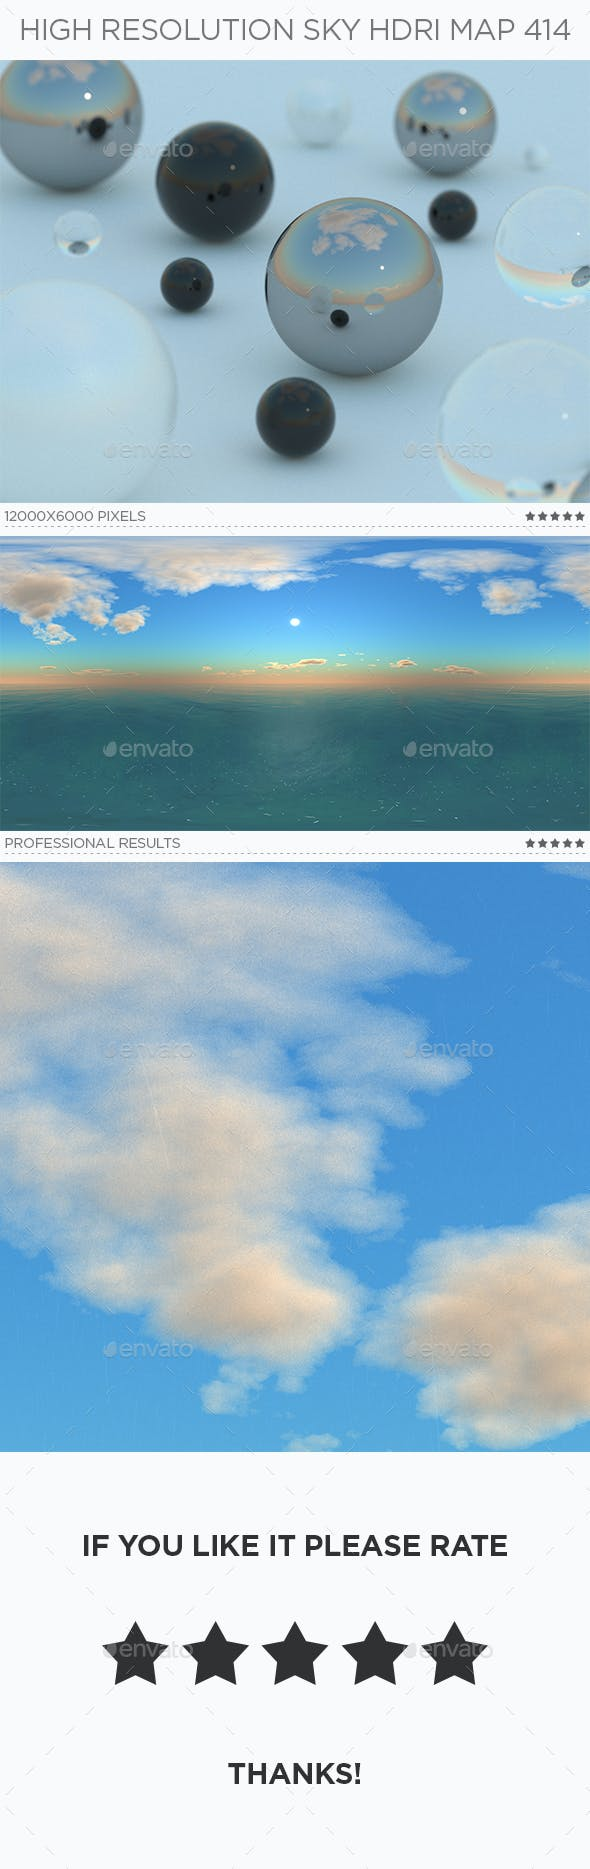 High Resolution Sky HDRi Map 414 - 3DOcean Item for Sale